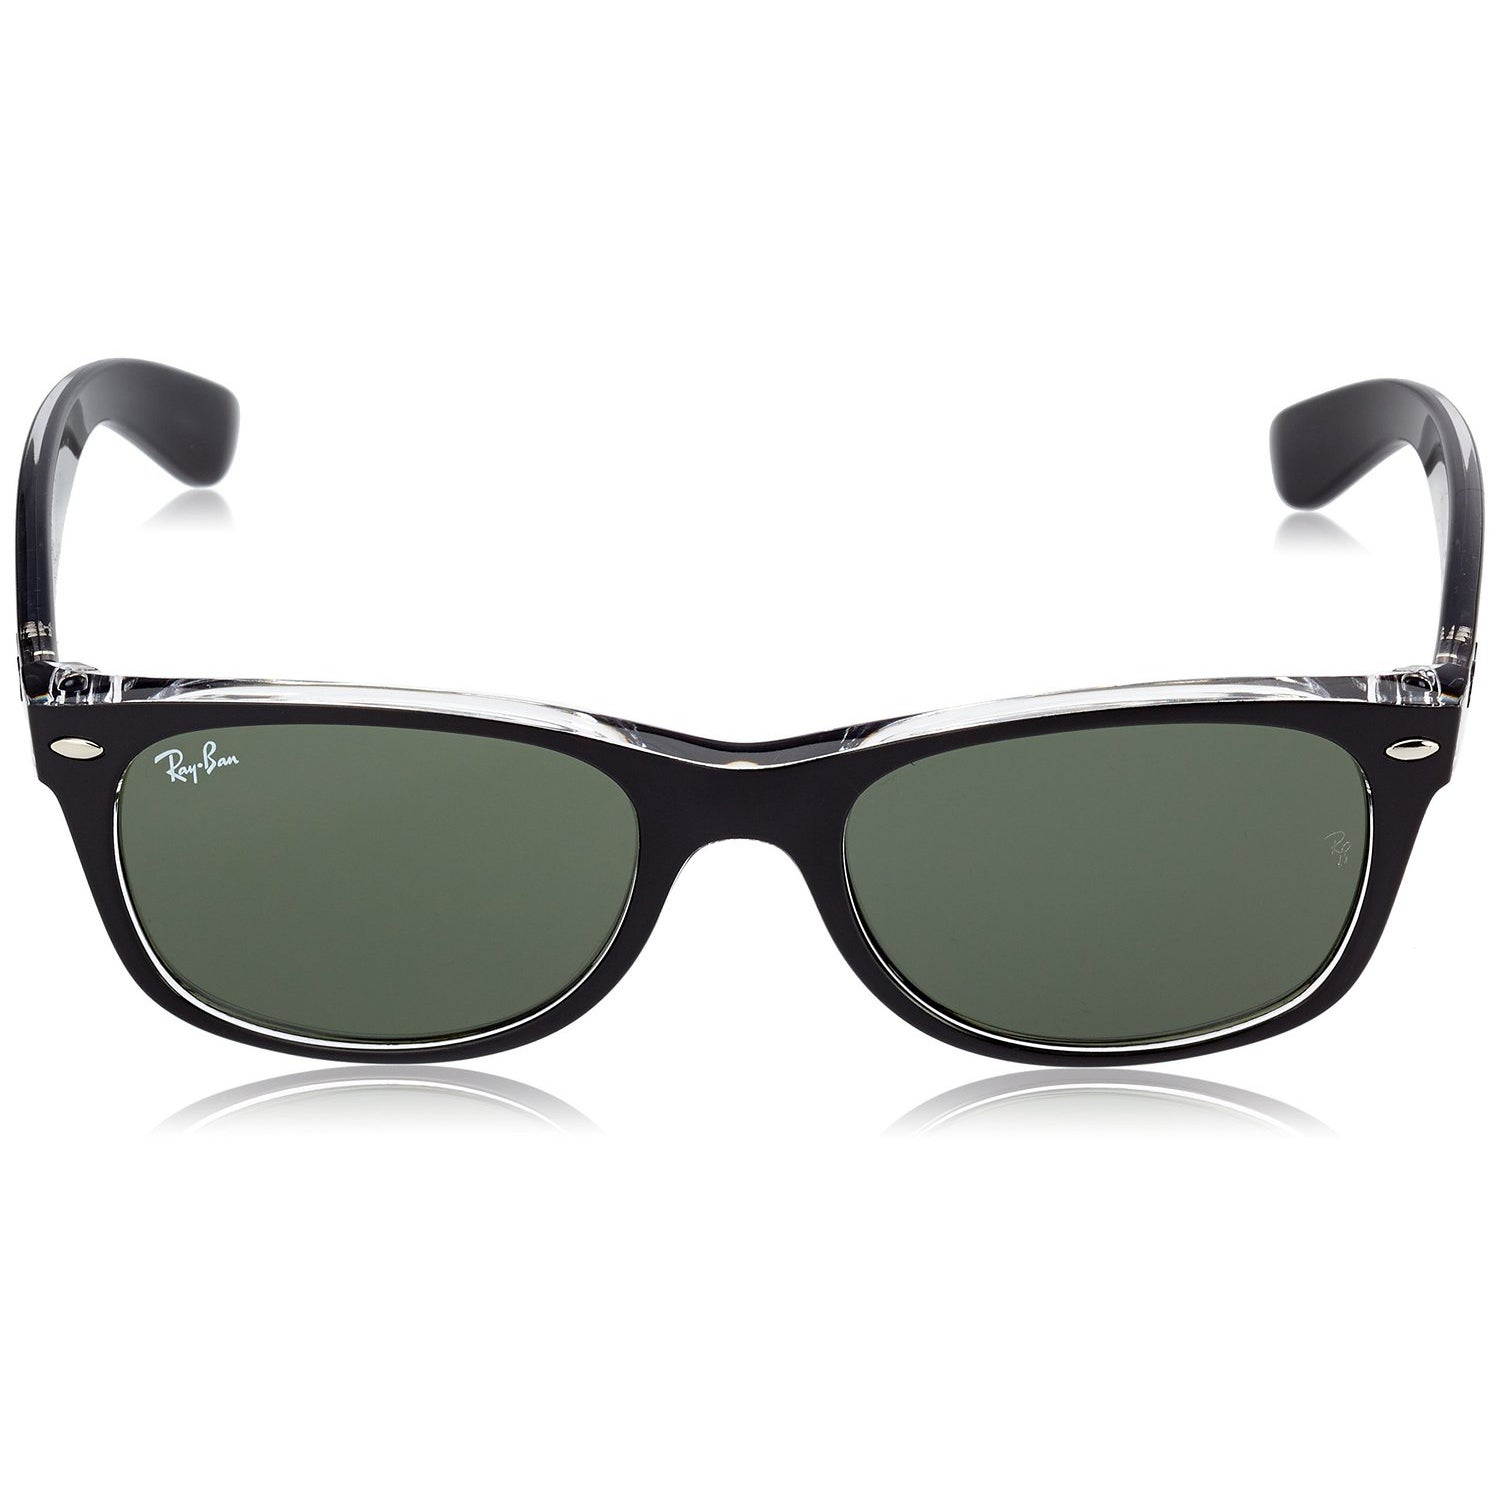 44bb627098 ... coupon code for shop ray ban rb2132 new wayfarer color mix sunglasses  transparent black green classic